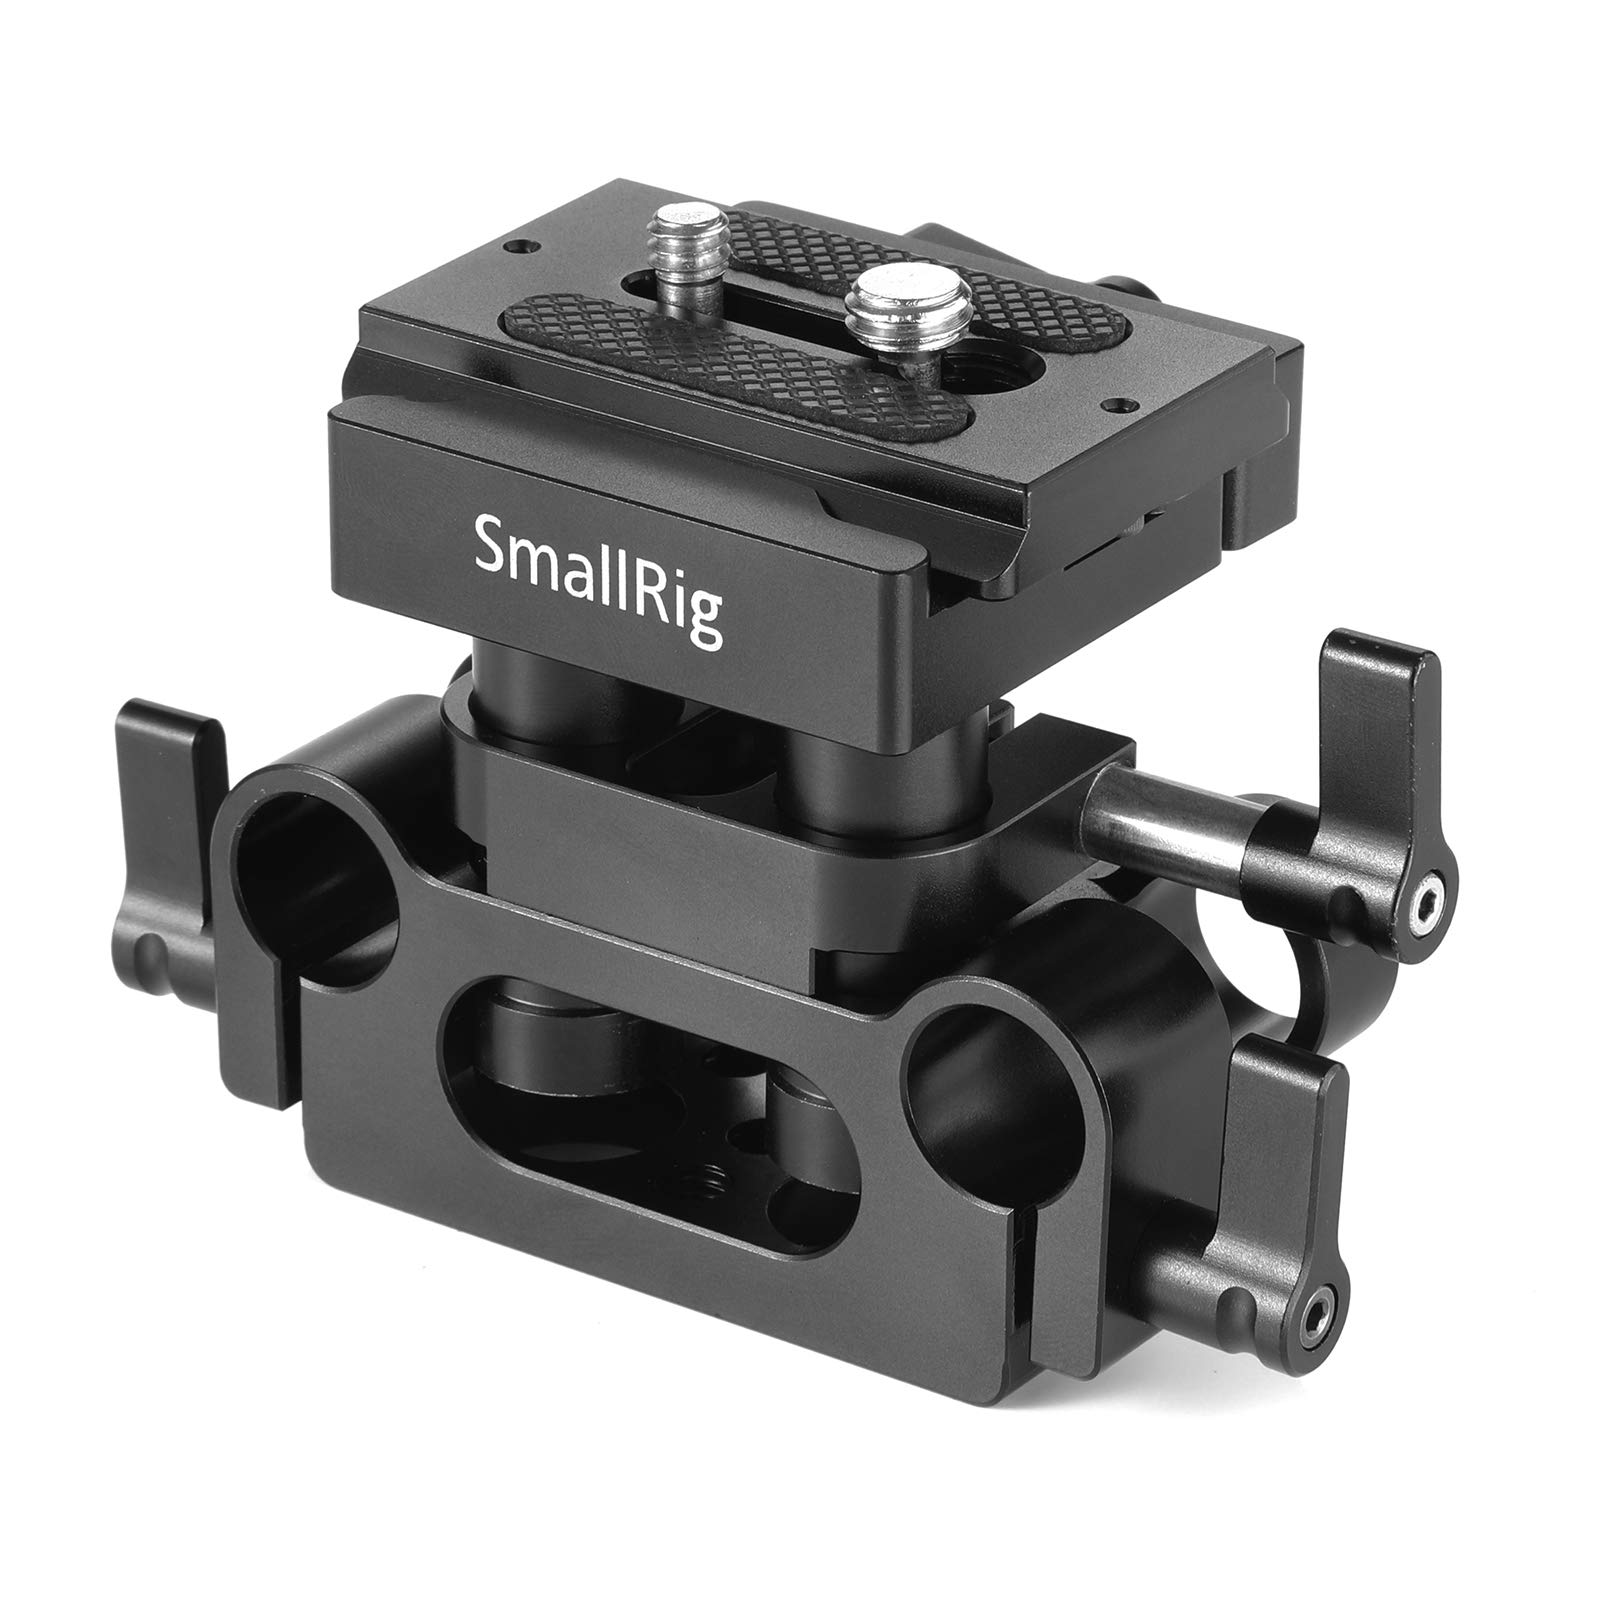 SMALLRIG Universal 15mm Rail Support System with 15mm Rod Clamp and Quick Release Plate - 2272